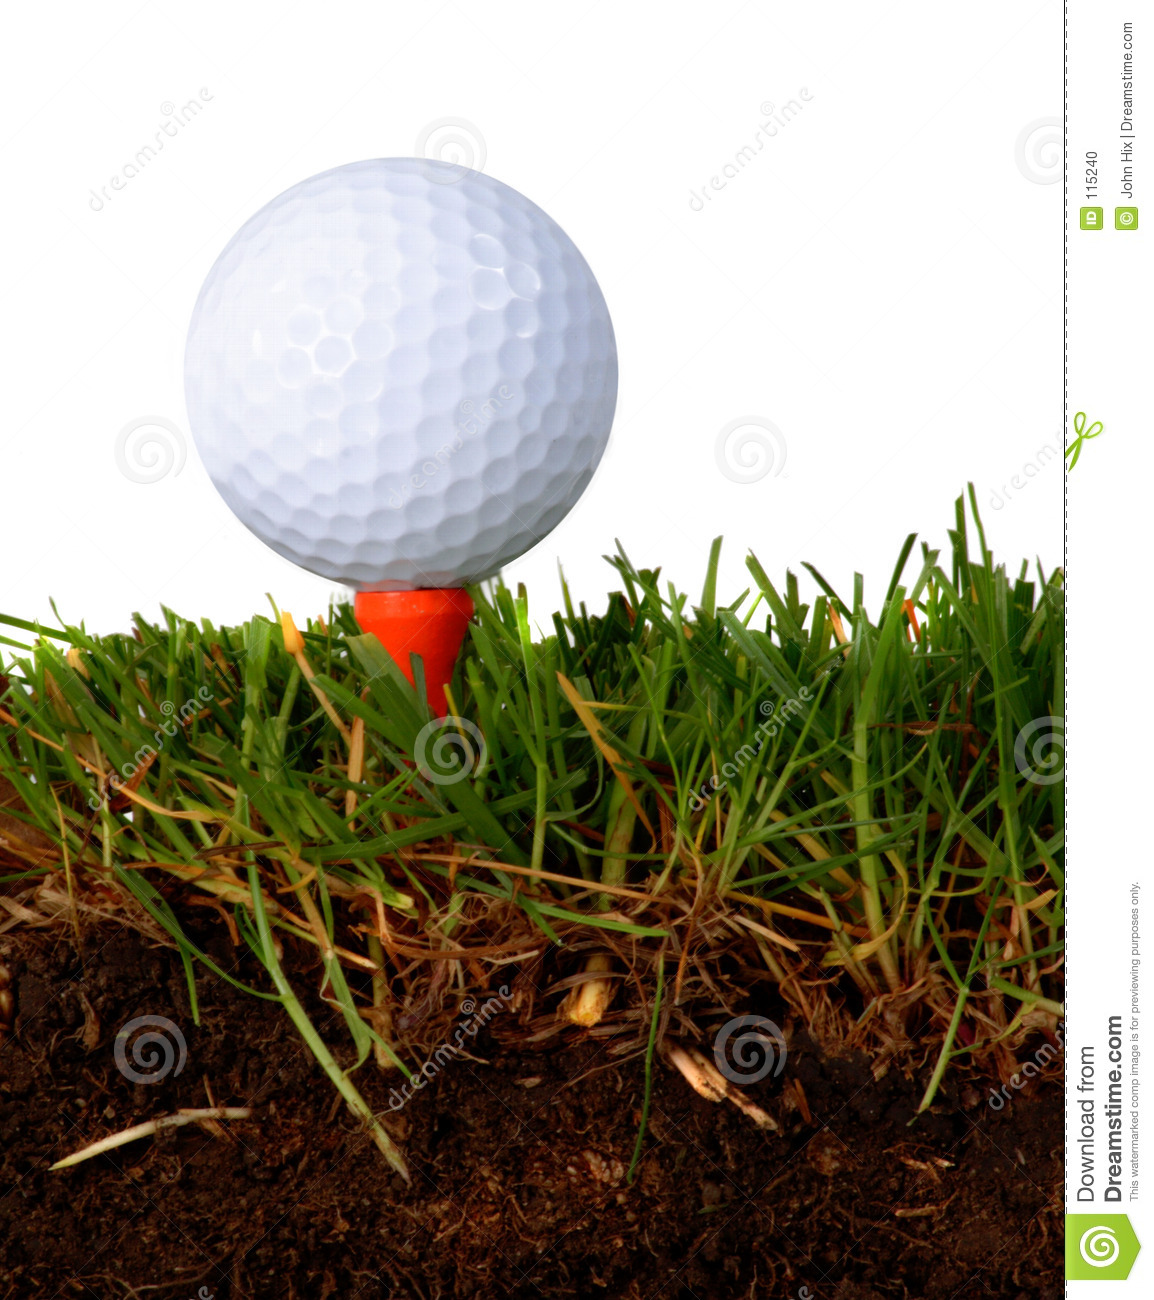 Worms view stock photo image 115240 for Fish food golf balls